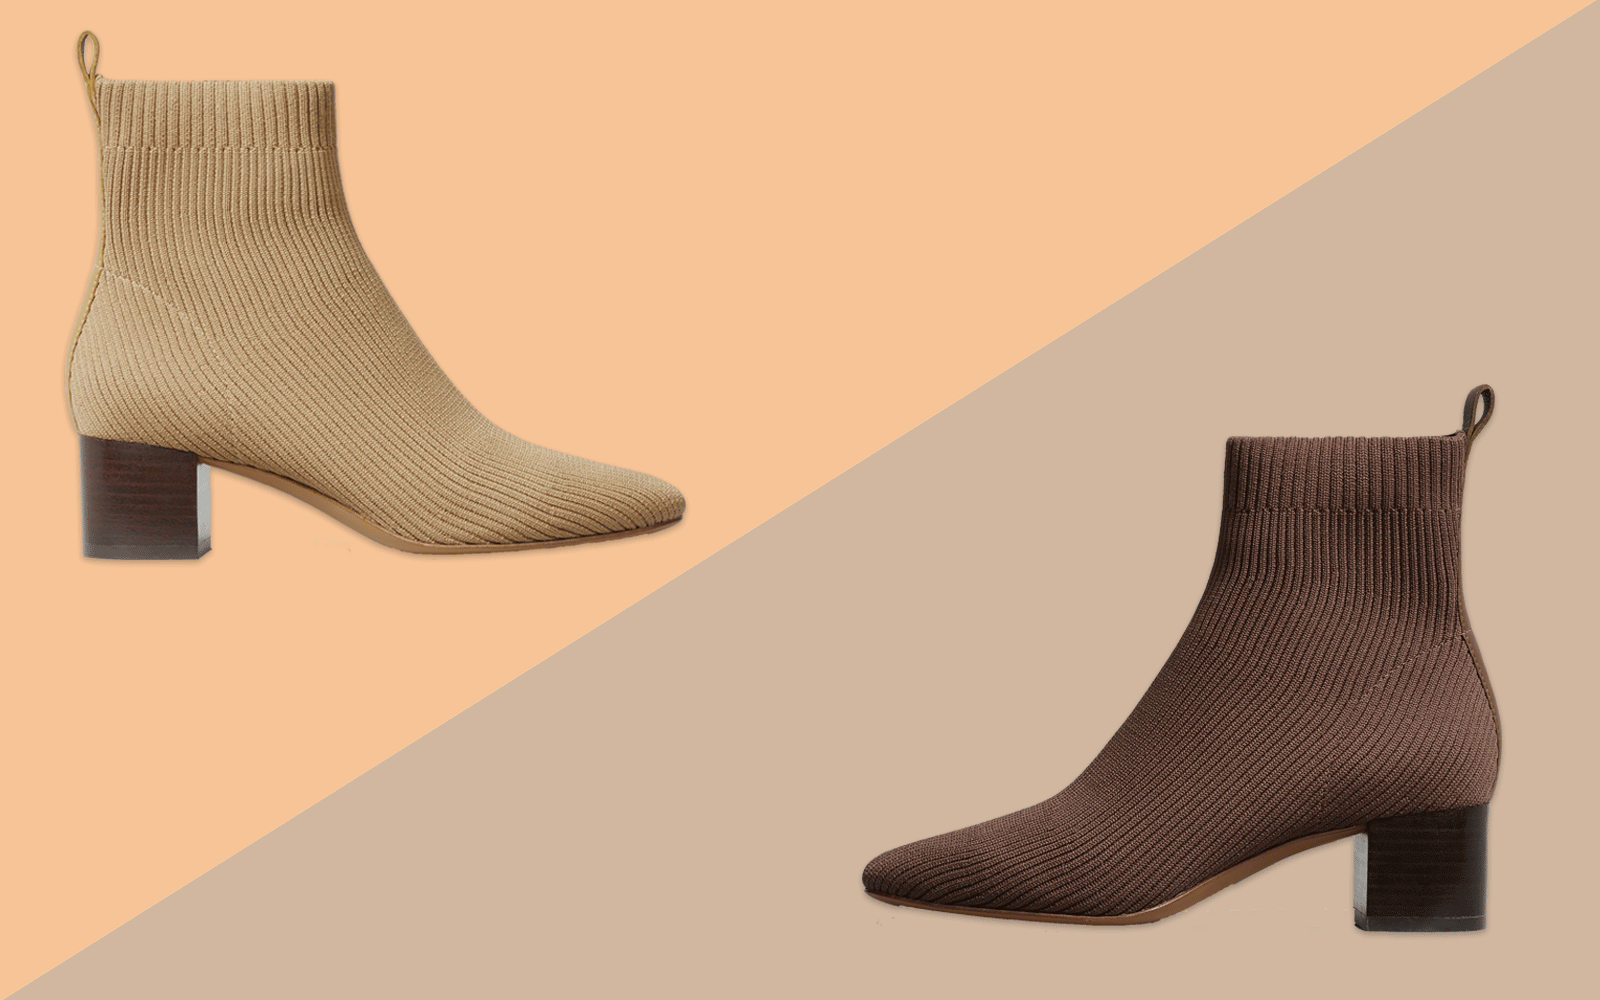 Everlane Tan and Brown Glove Boots